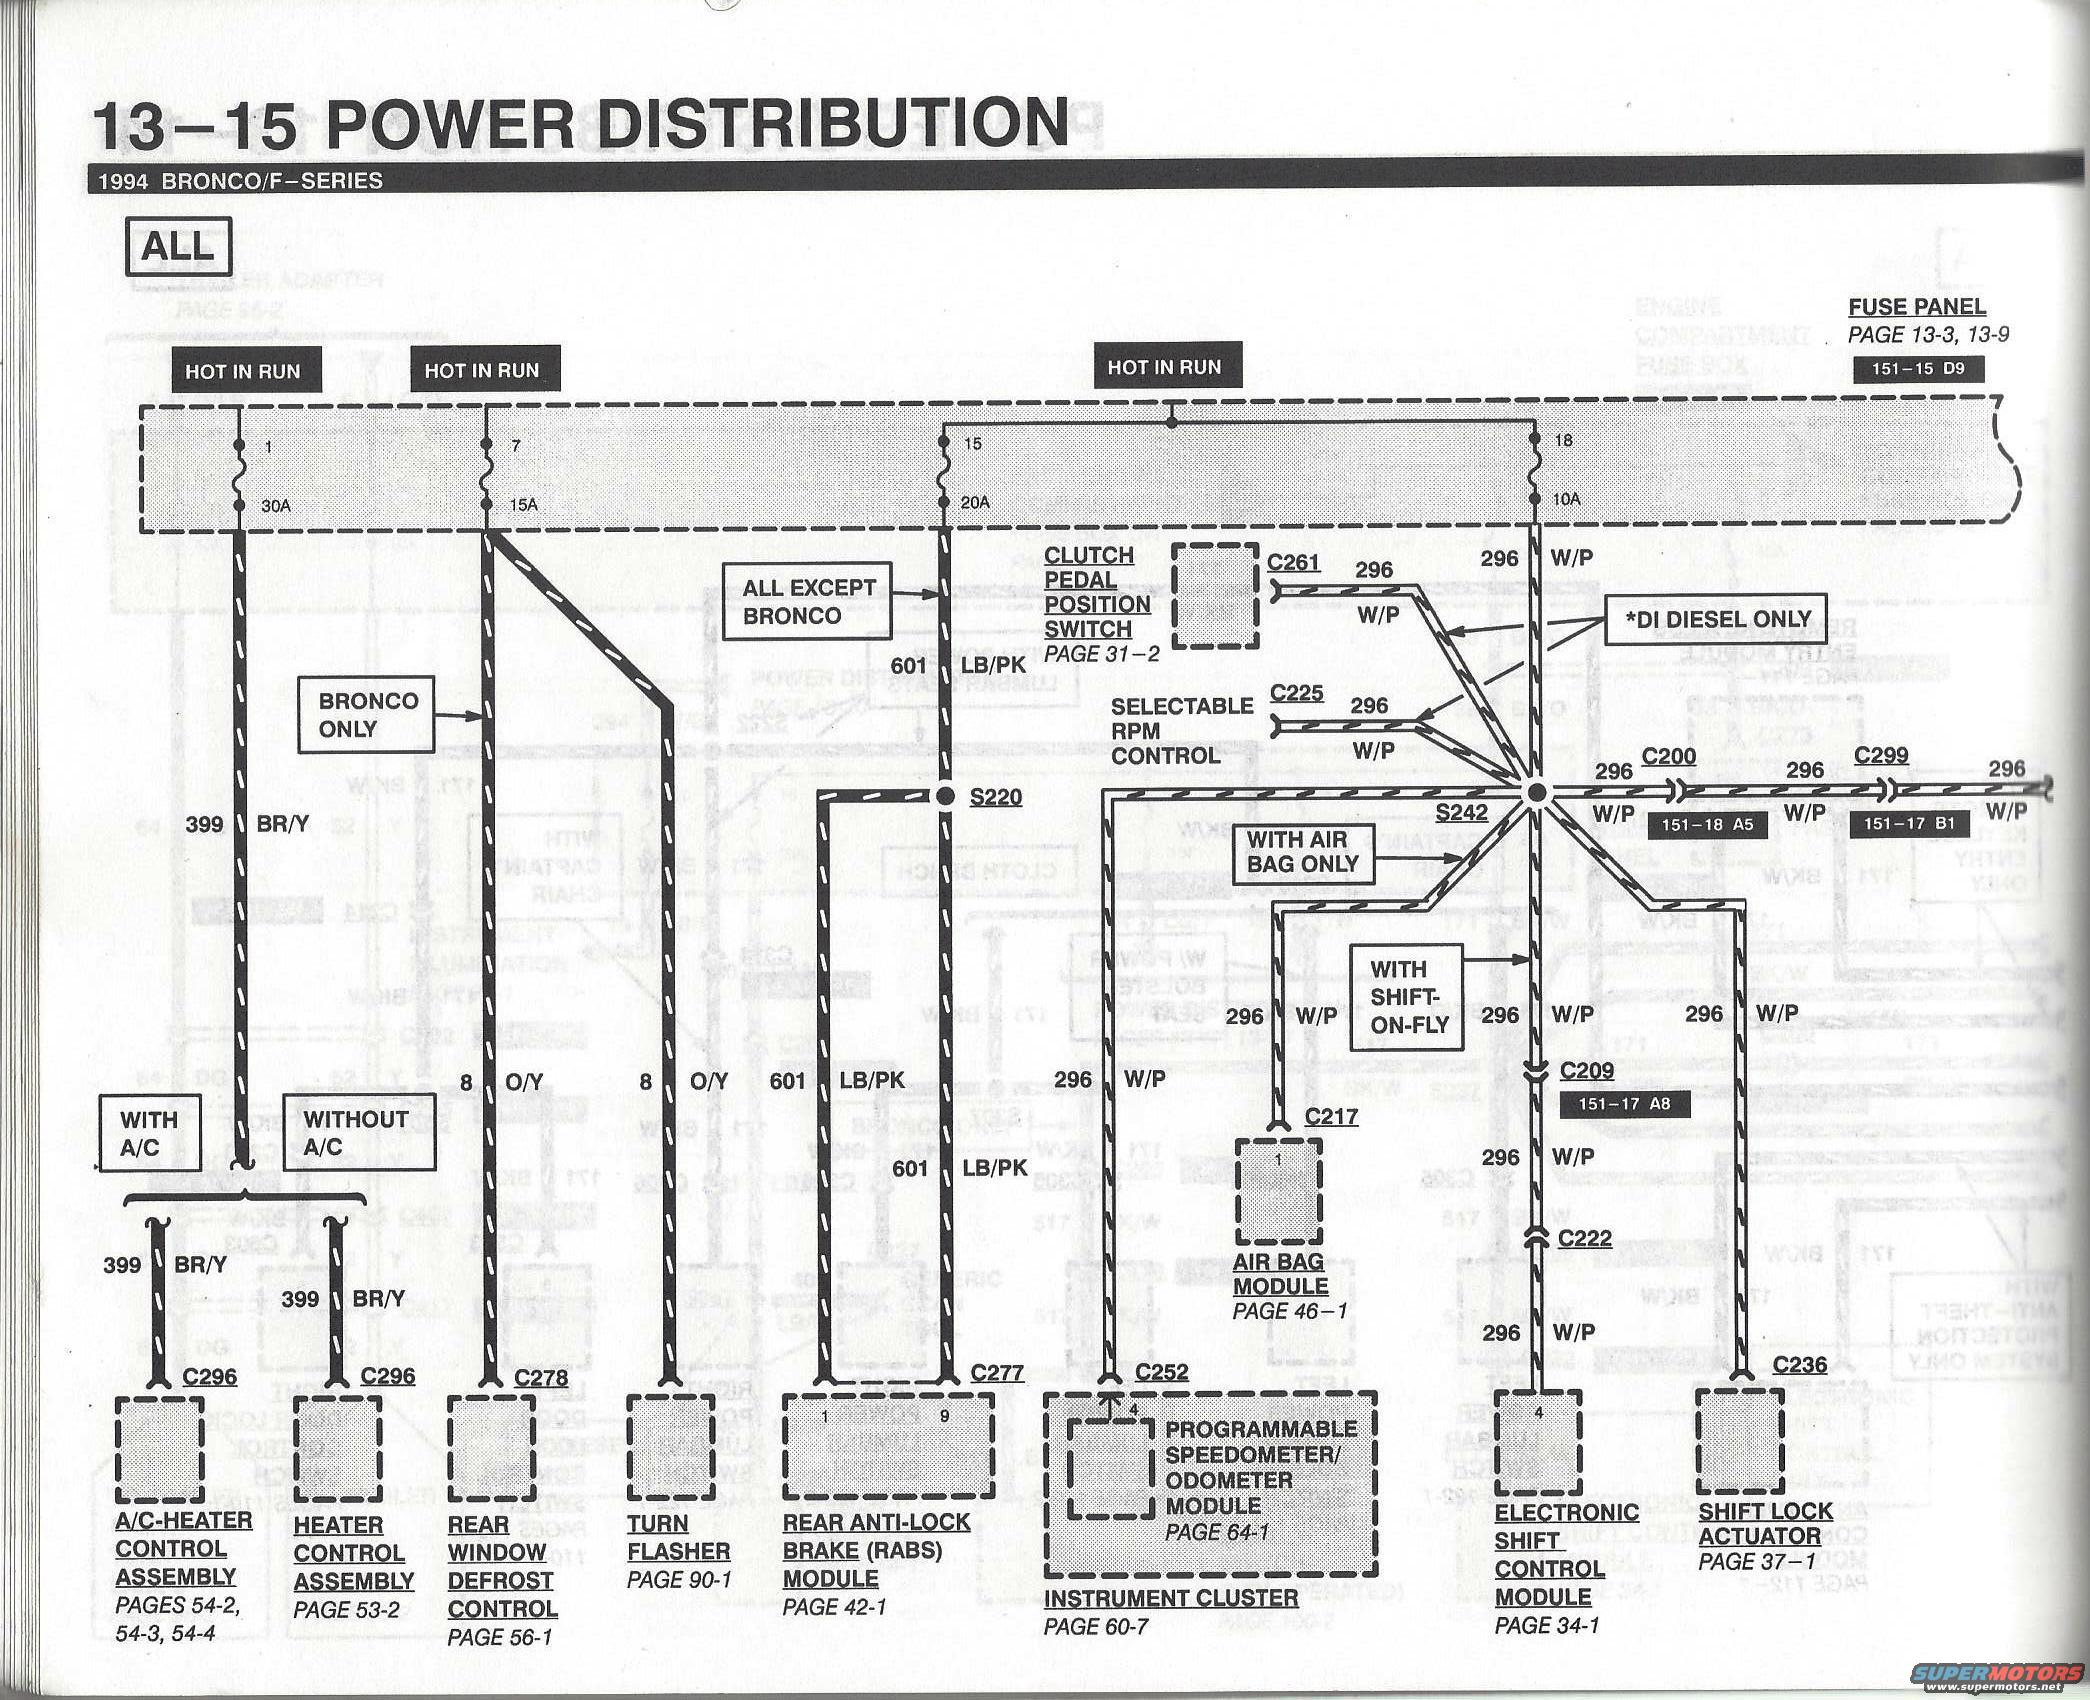 Console Wiring Diagram Together With Dodge Truck Wiring Diagram